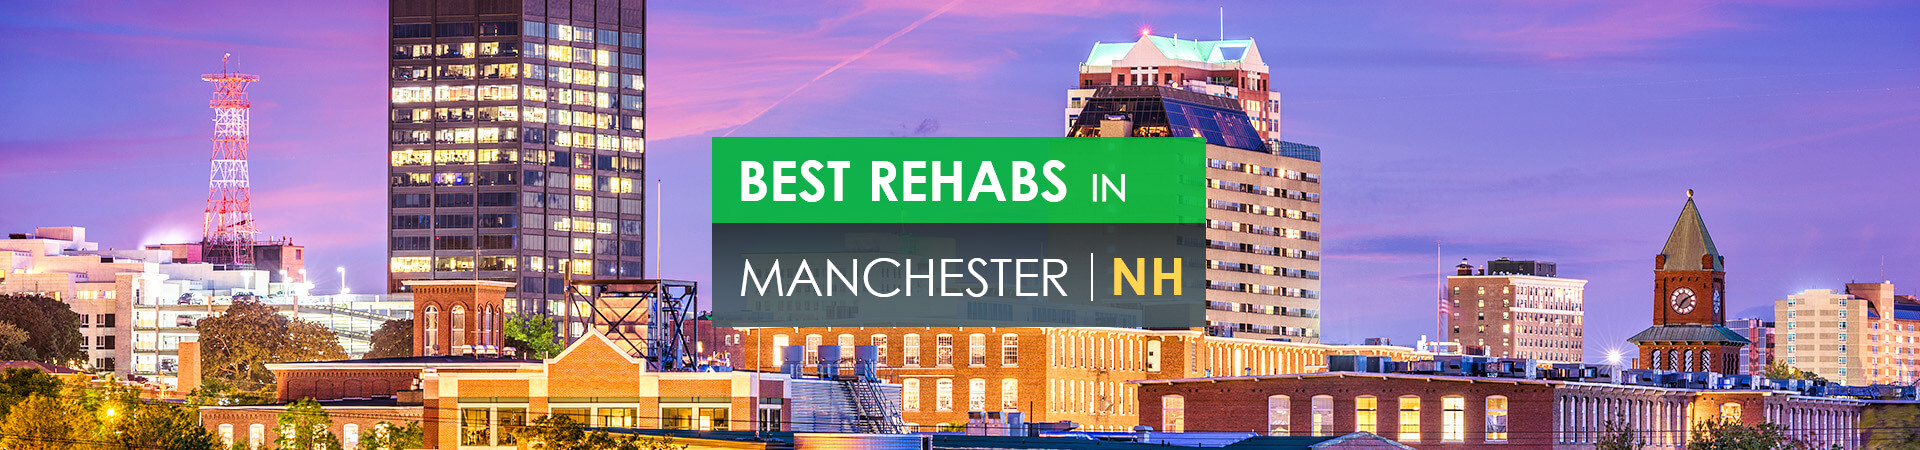 Best rehabs in Manchester, NH